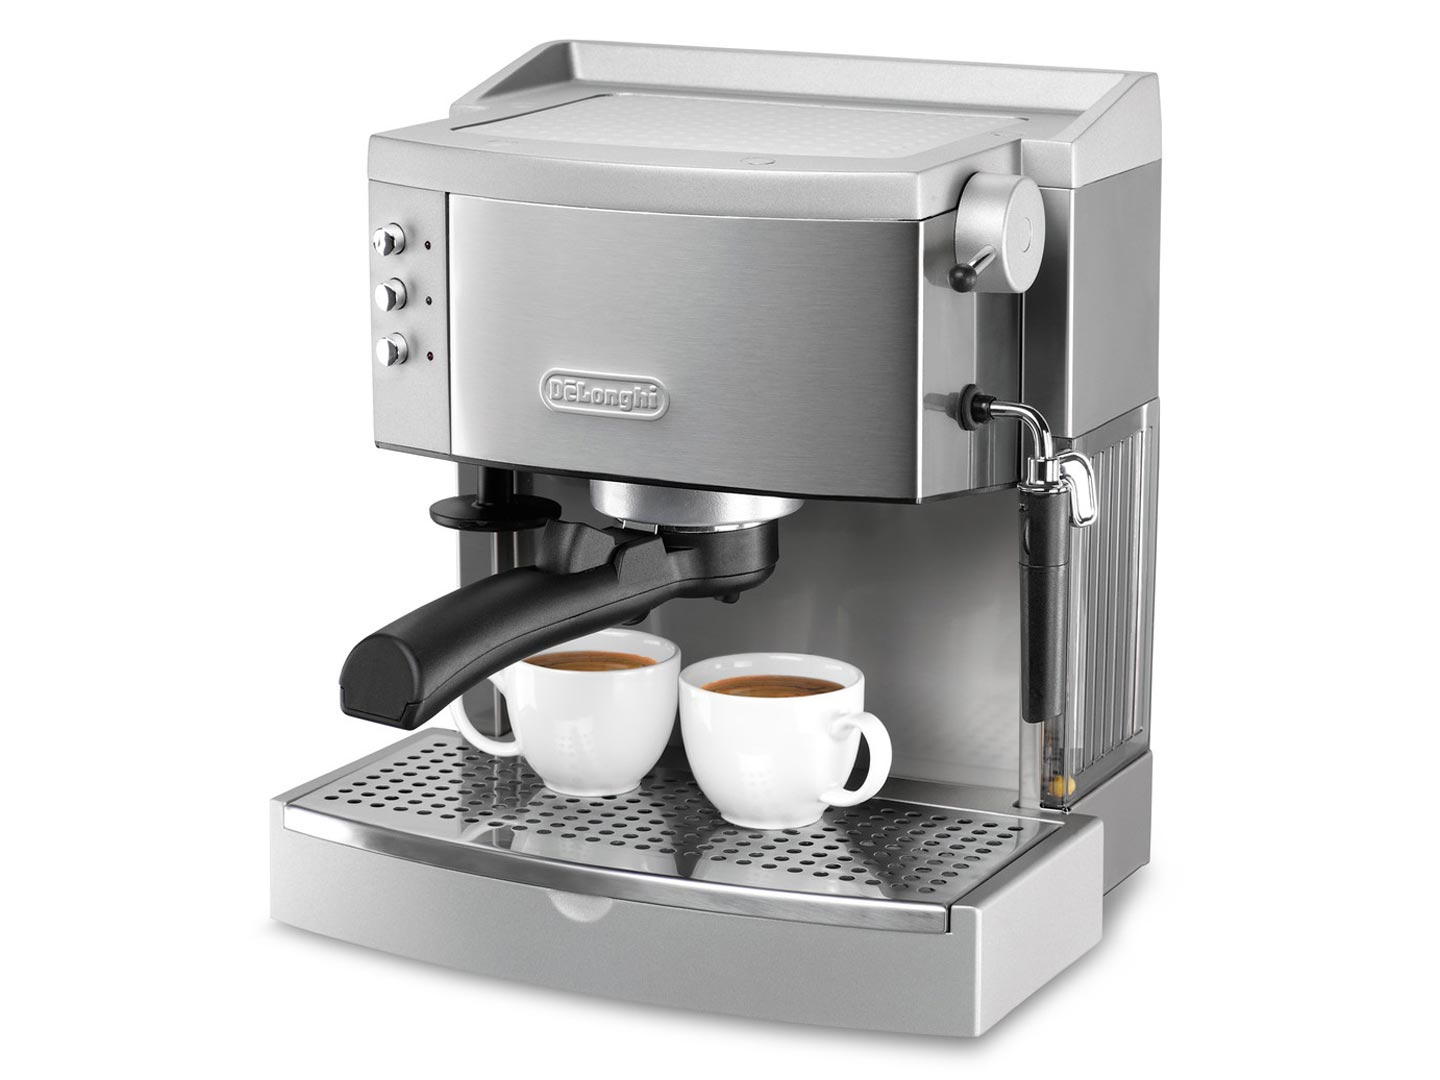 delonghi ec702 15 bar pump espresso maker review techlogitic. Black Bedroom Furniture Sets. Home Design Ideas